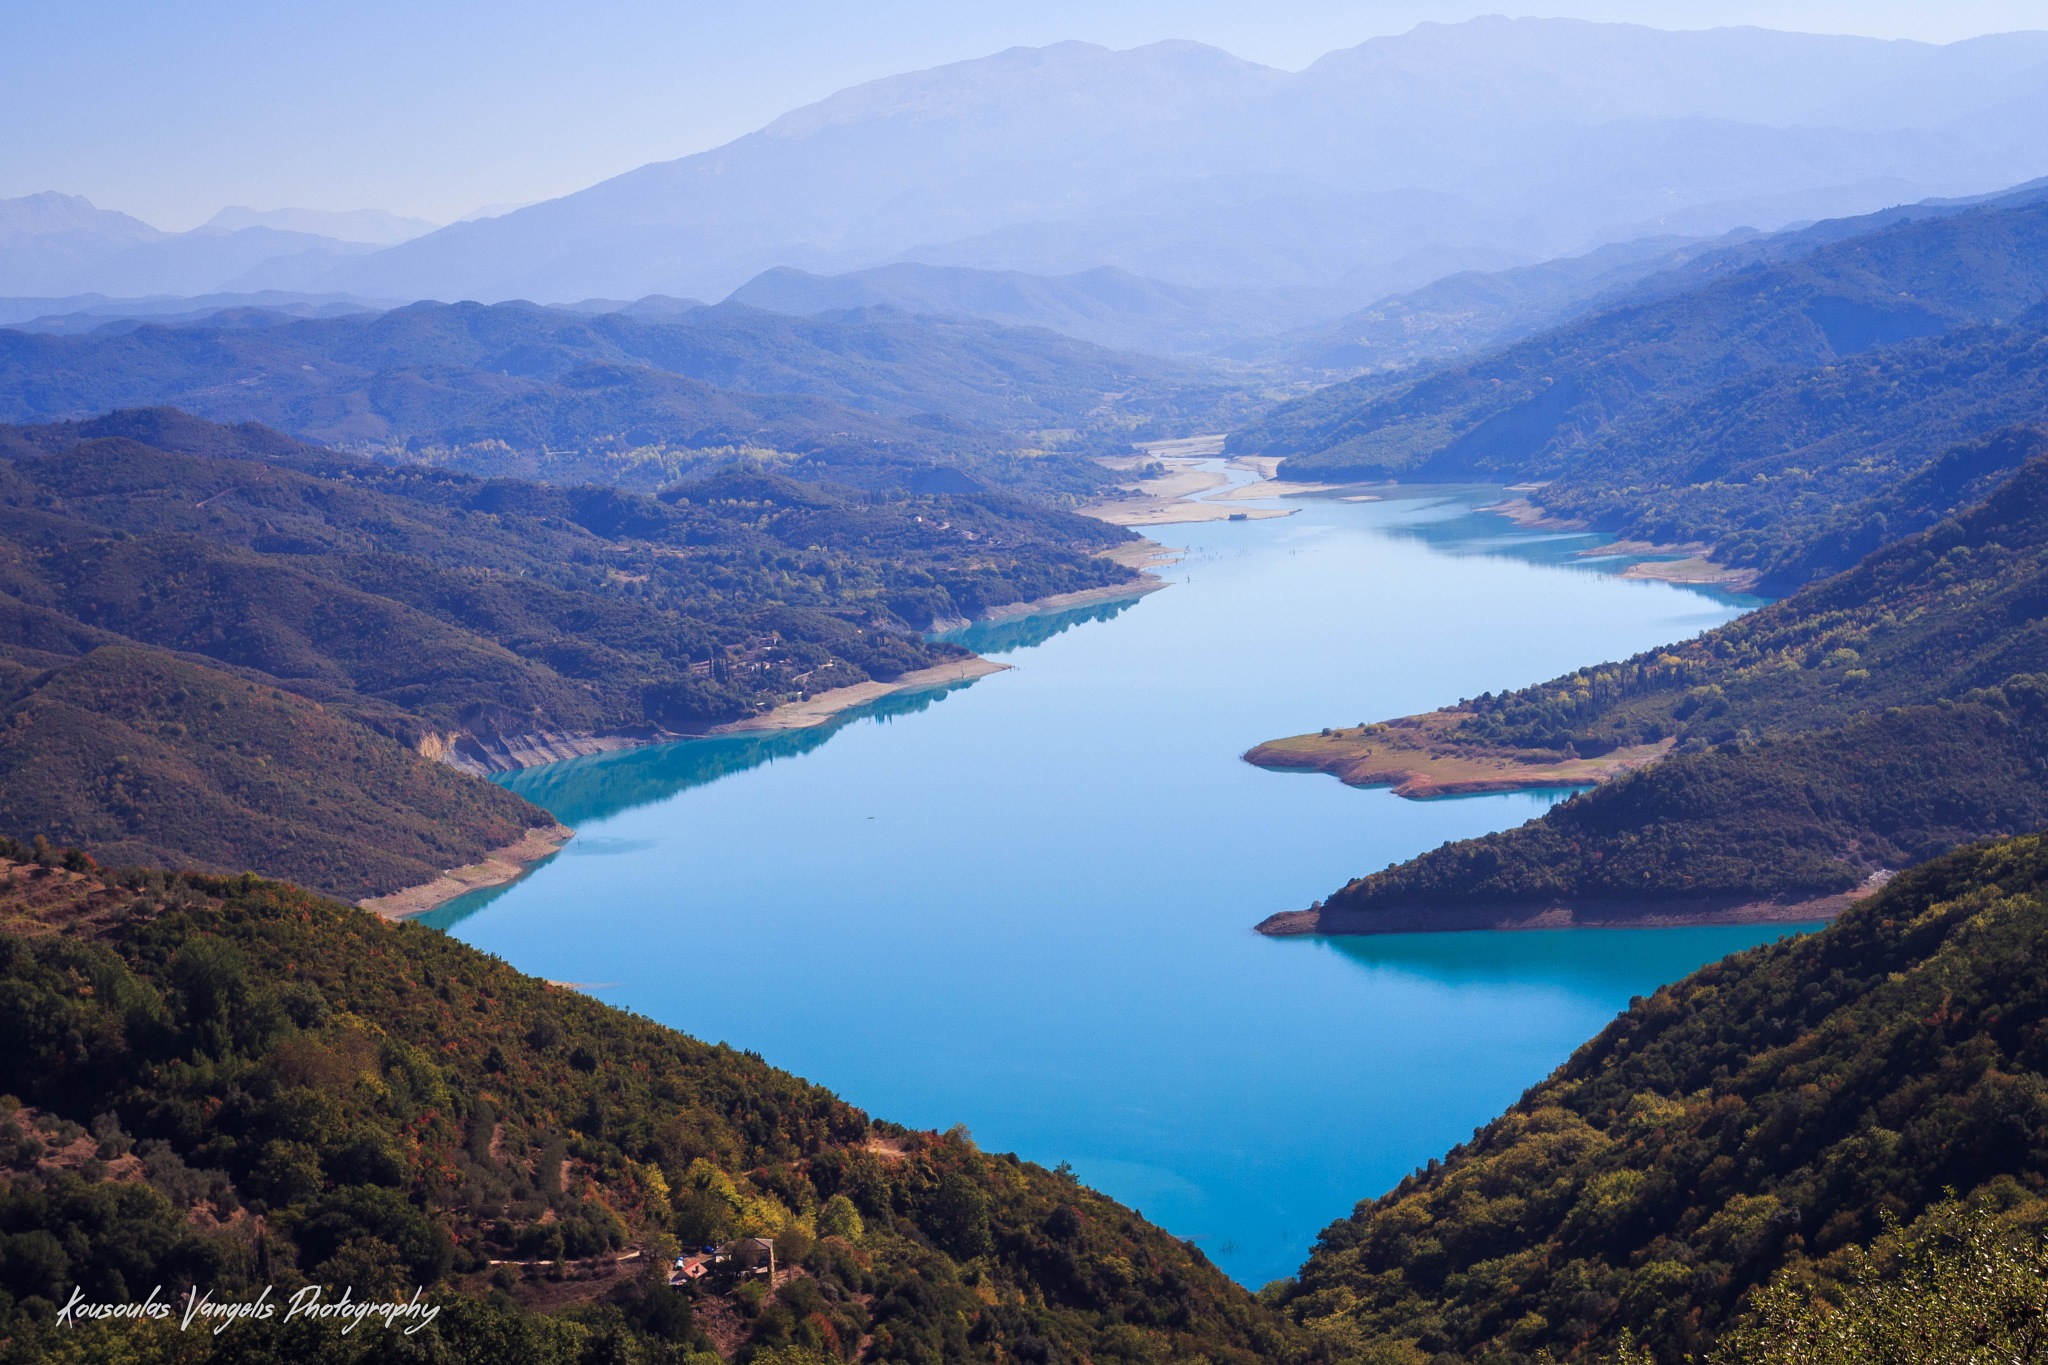 Lake my village by kousoulas vangelis